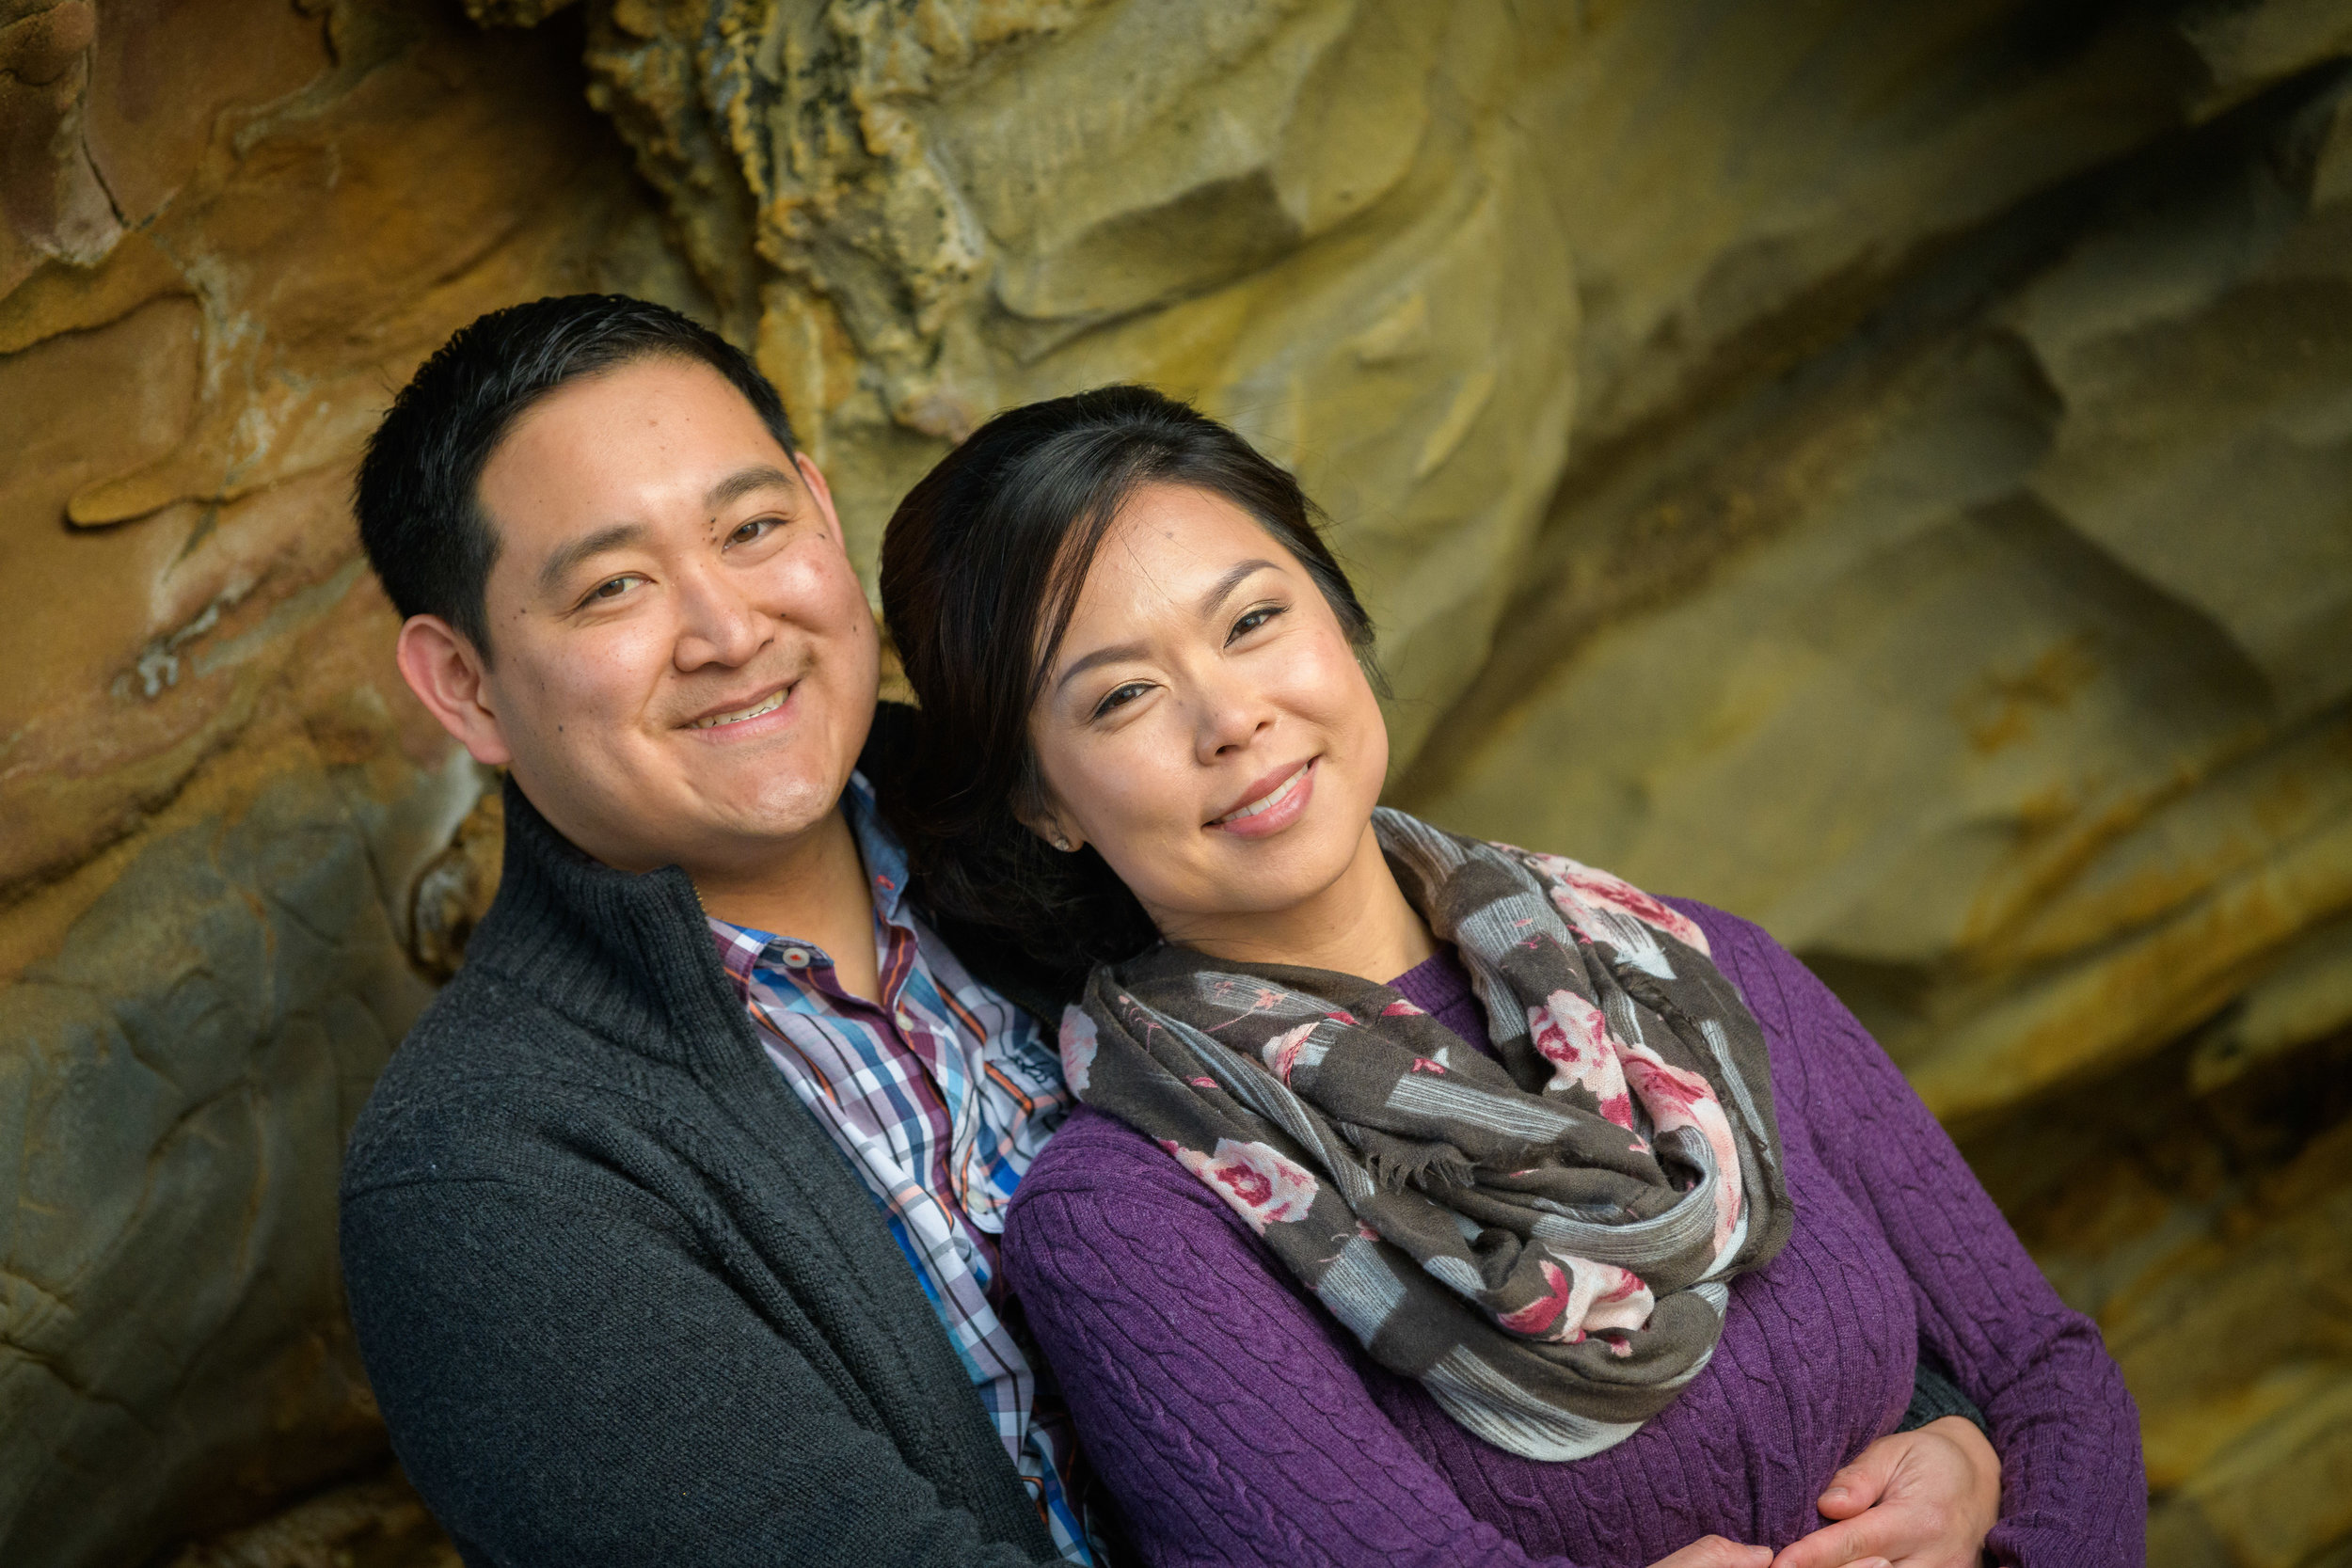 8117_Kelly_and_Patrick_Panther_Beach_Santa_Cruz_Engagement_Photography.jpg